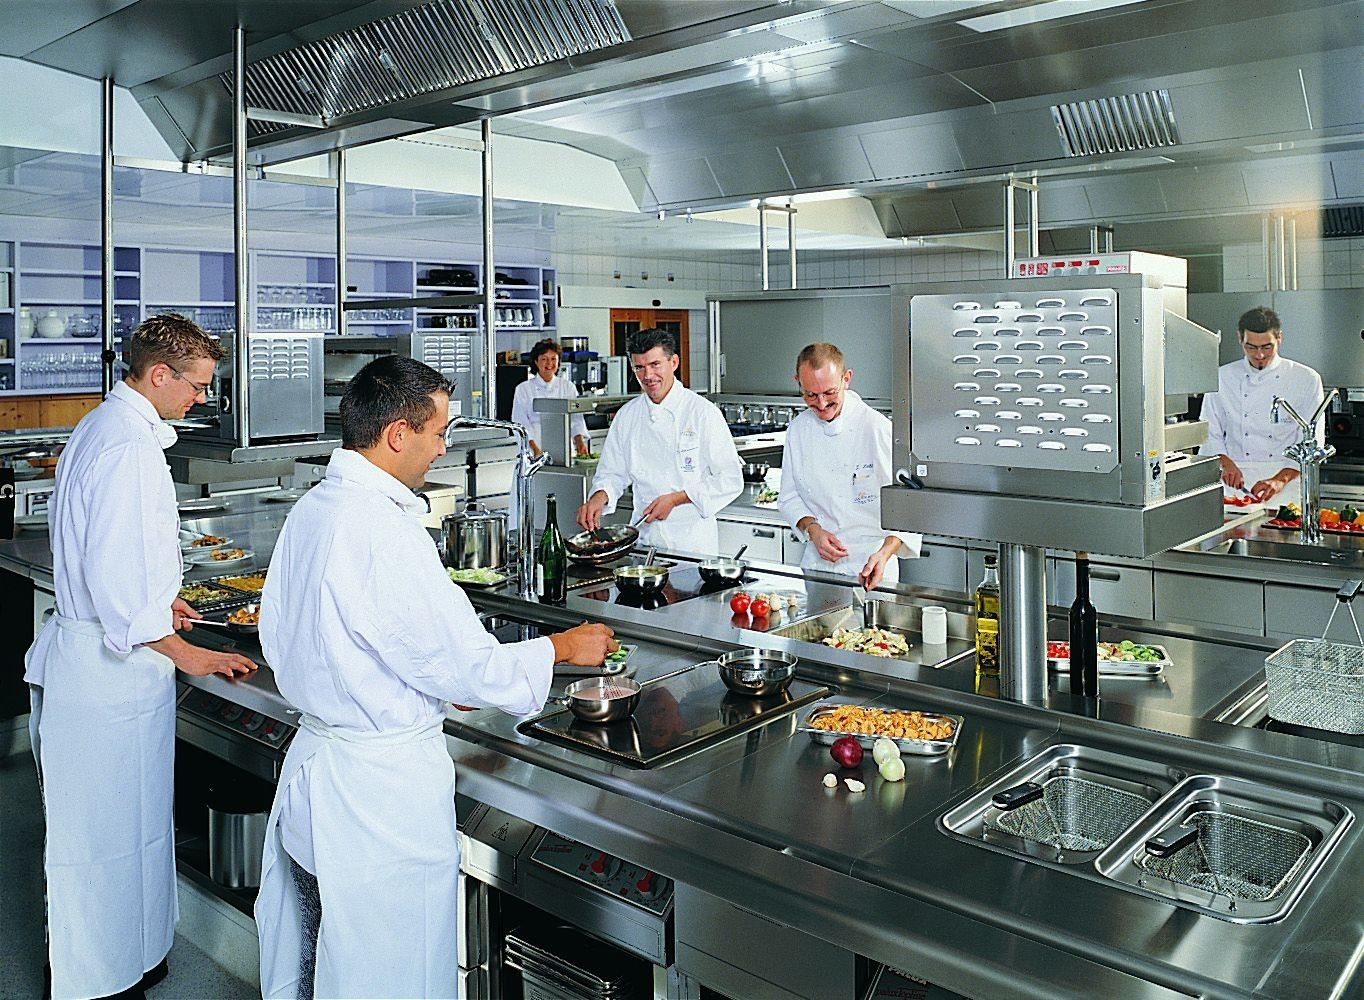 Restaurant Kitchen Equipment Repair kitchen equipment | the commercial kitchen | pinterest | kitchen